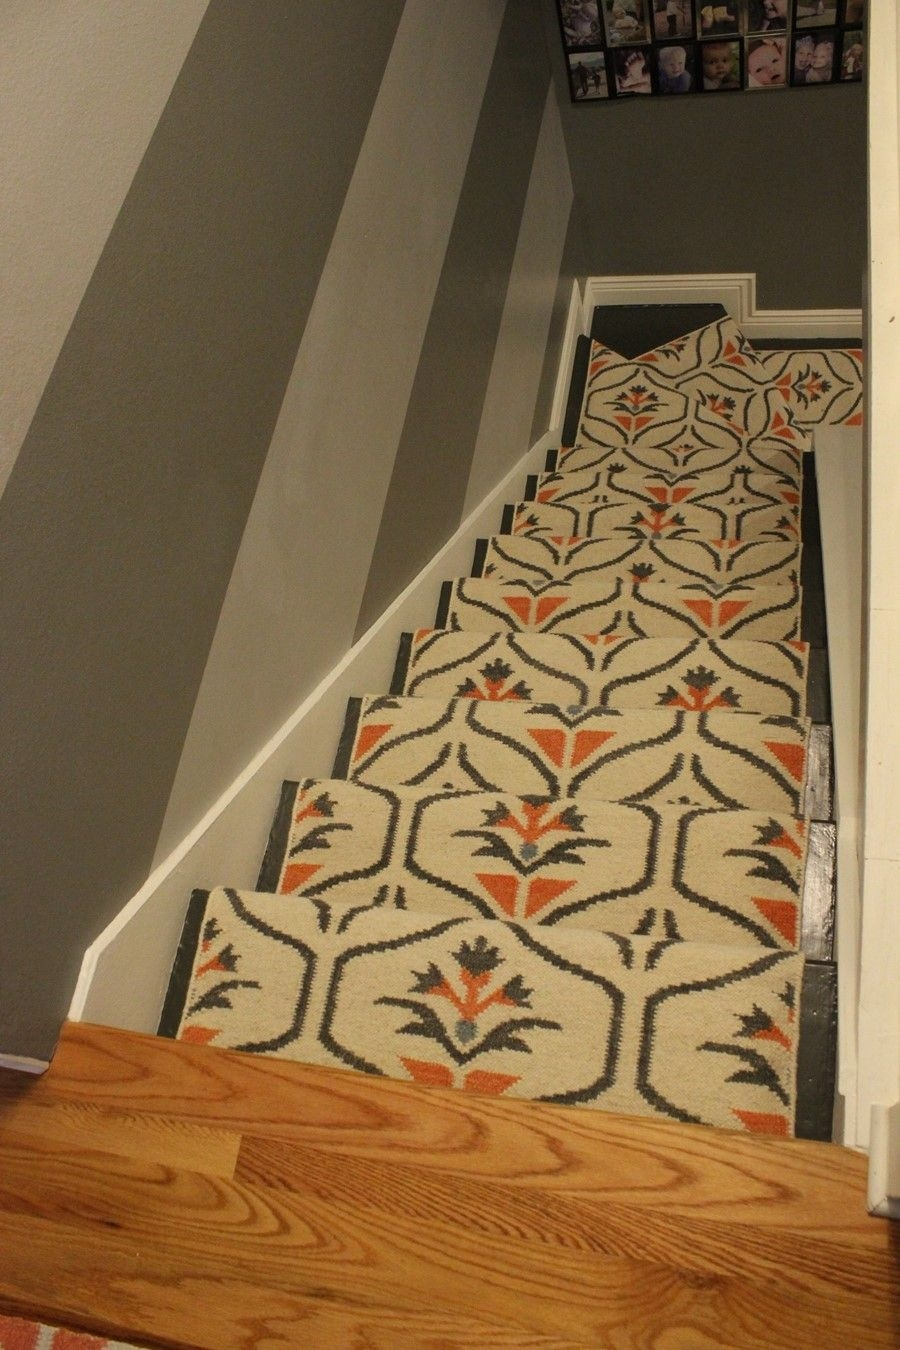 Update Your Staircase How To Remove And Install Carpet On The Stairs   Carpet Down Middle Of Stairs   Stair Rods   Wood   Hardwood   Steps   Laminate Flooring